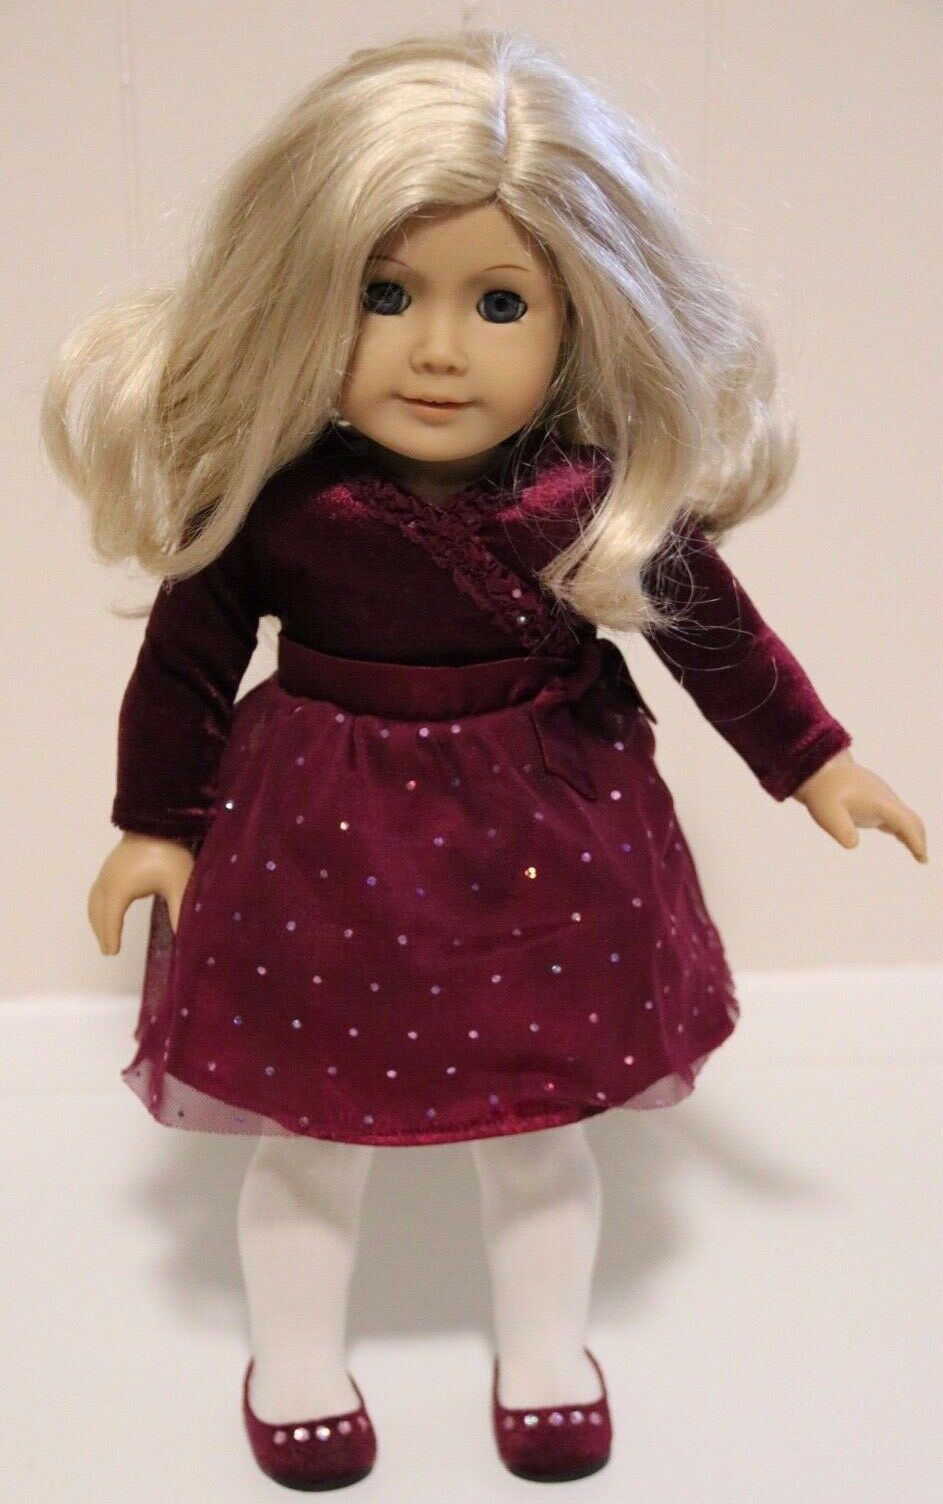 American Girl Truly Me  22 Retirot Light Skin Light Blond Wavy Mid Length Hair